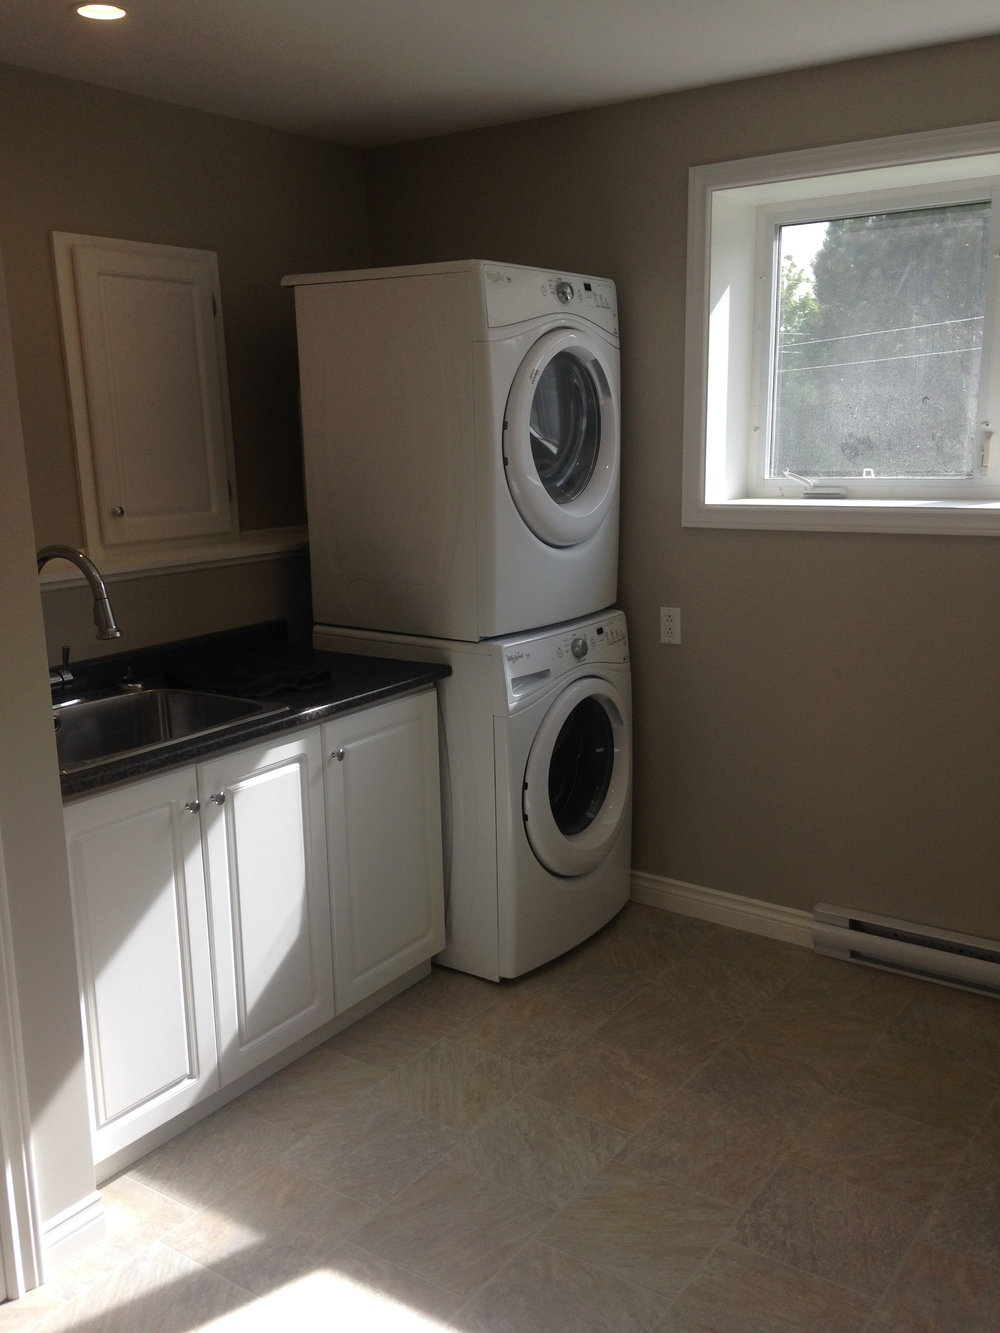 Stacked washer/dryer with sink and cabinets